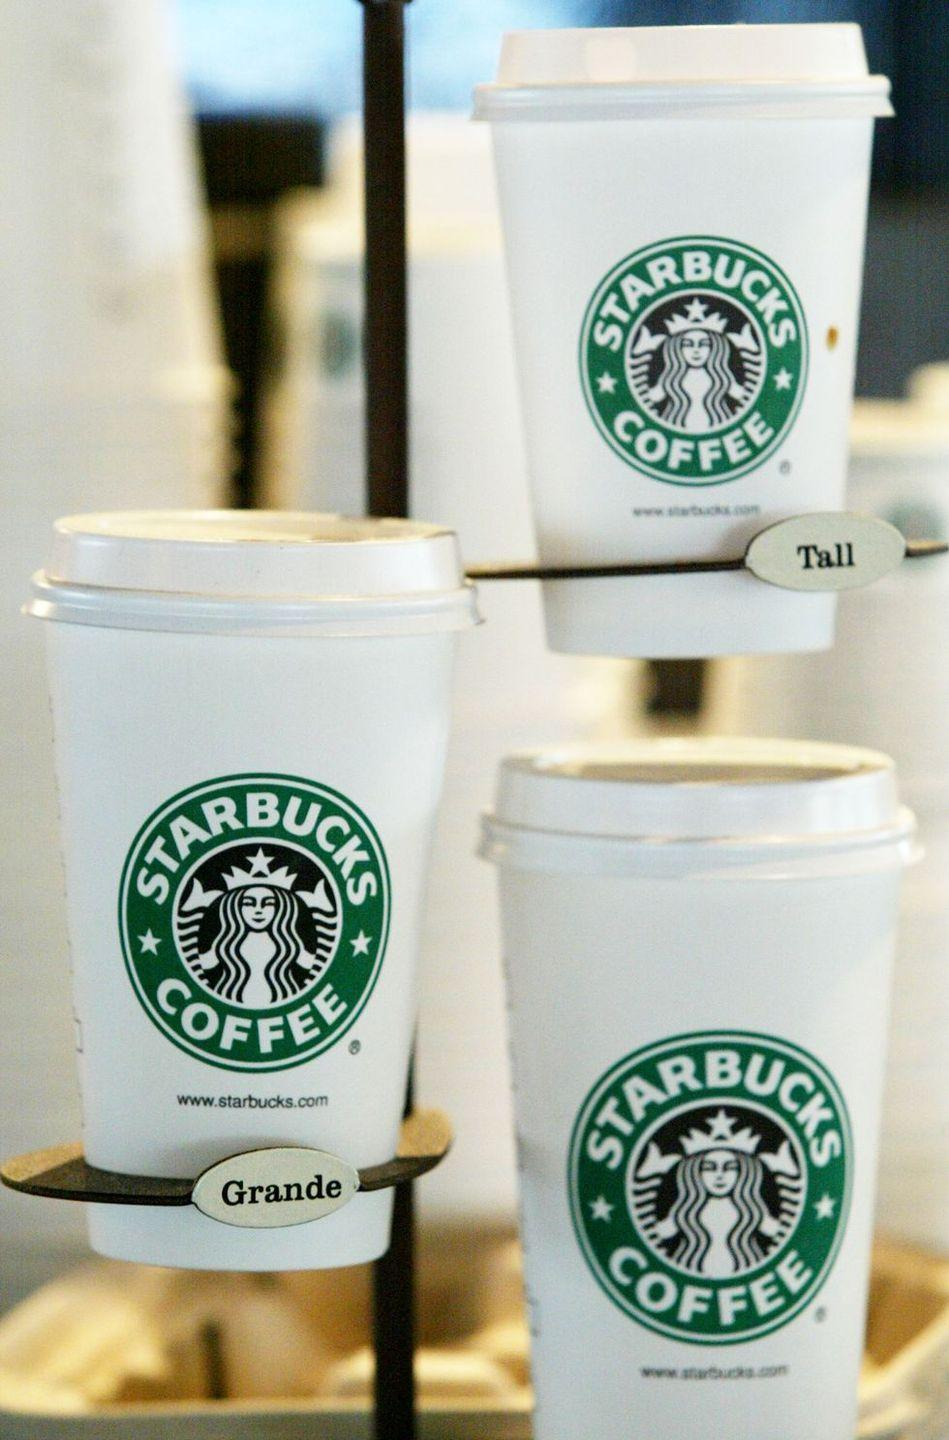 <p>As a way to solidify the brand's unique culture, the company created a system that was different from your average coffee shop—starting with the sizes. Instead of small, medium, and large, Starbucks served tall, grande, and venti beverages.</p>